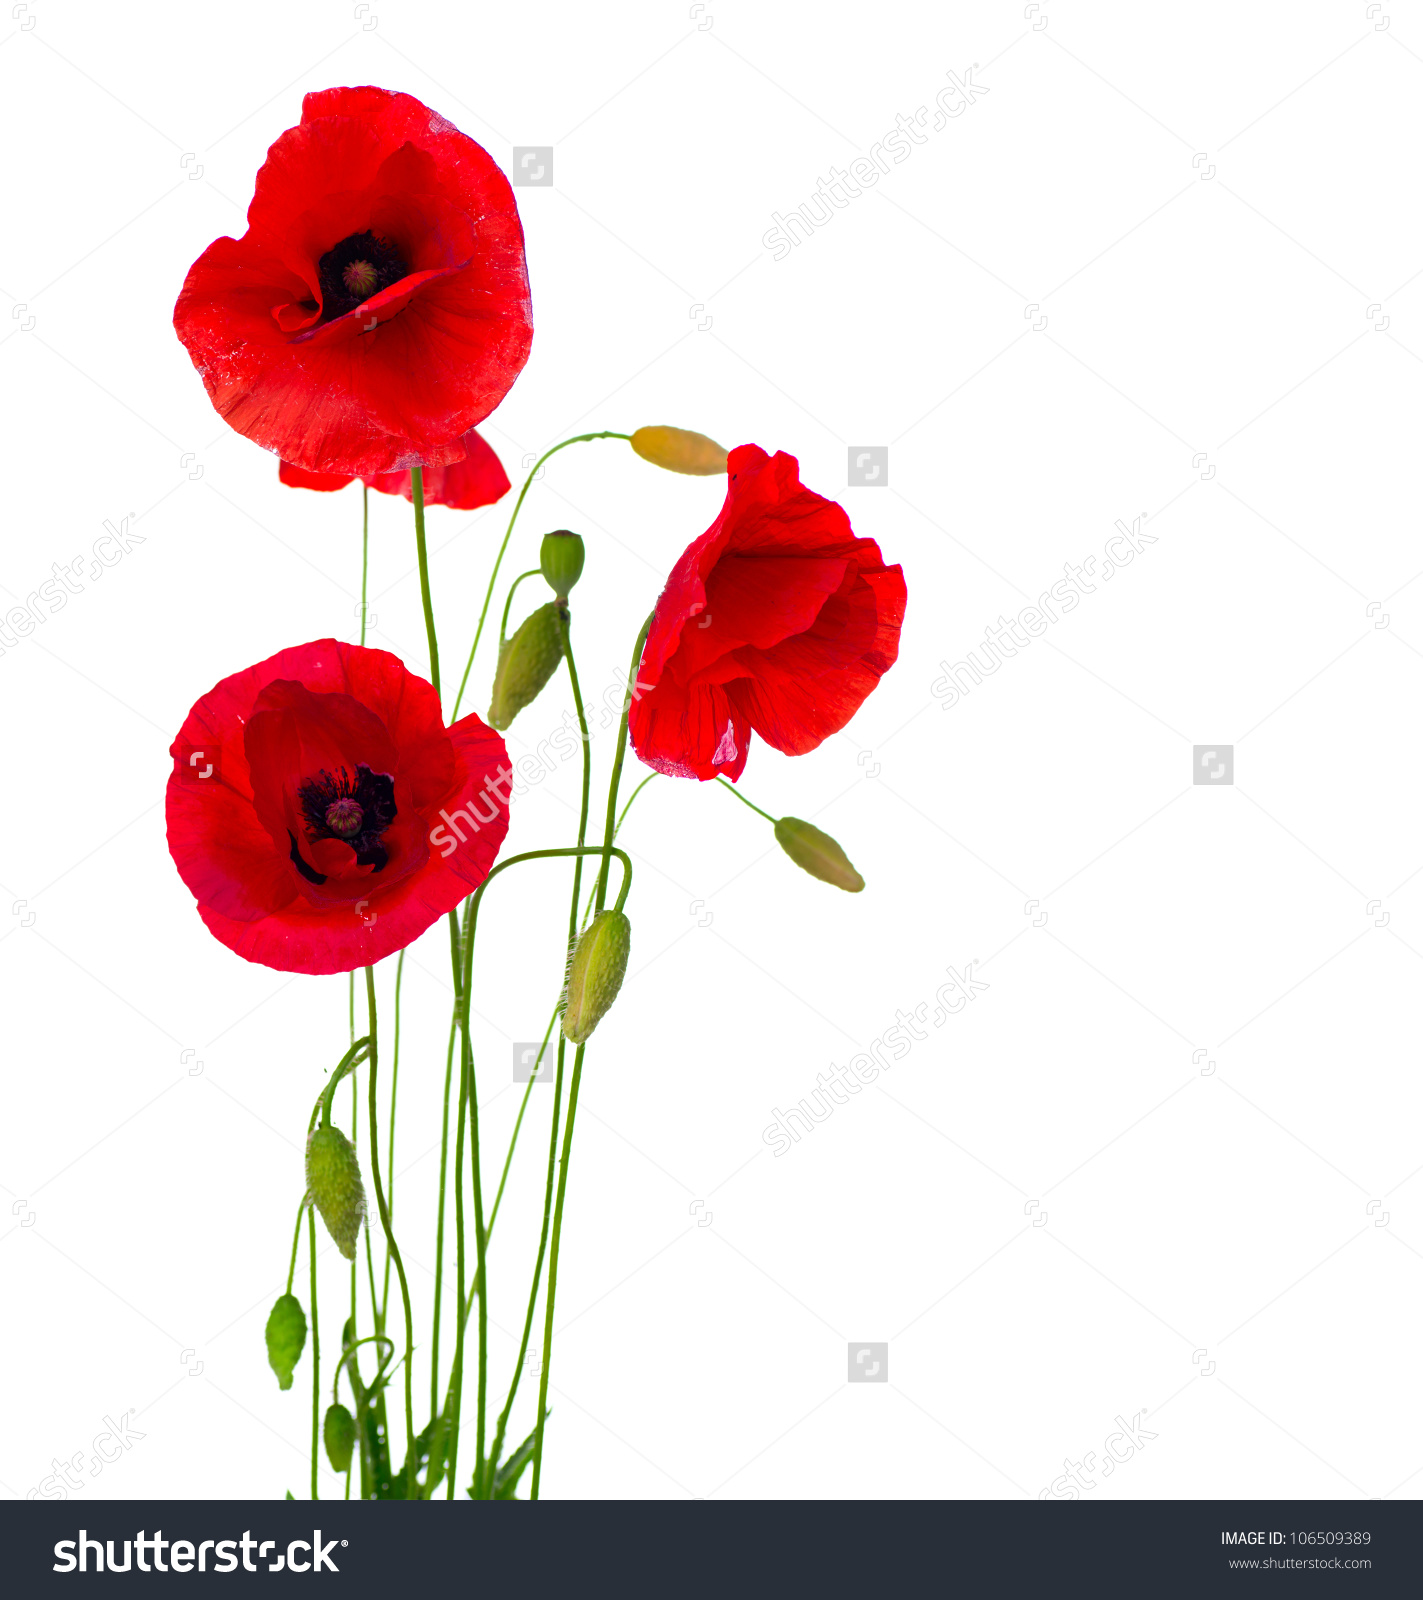 Free Photo Red Poppy Flower Park Outdoors Nature Free